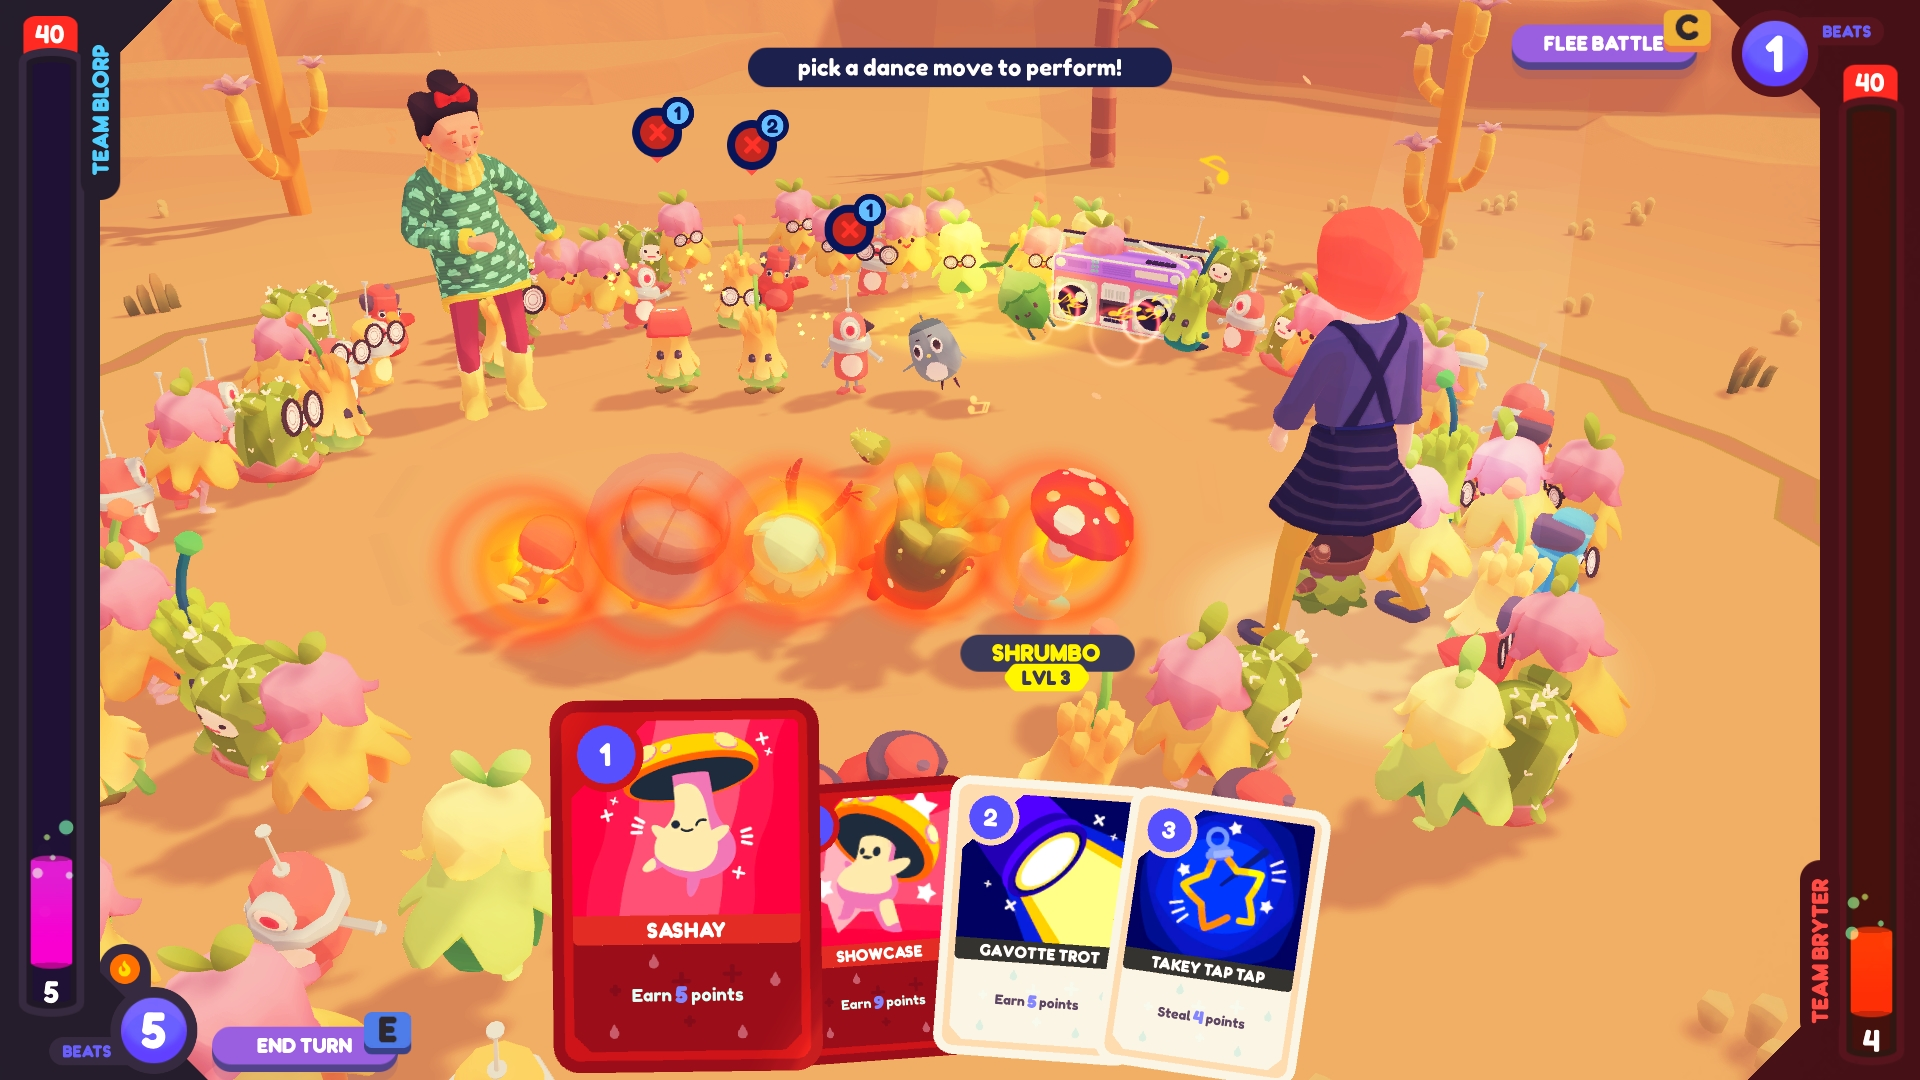 A screenshot showing the player's ooblets engaged in a tense dance battle